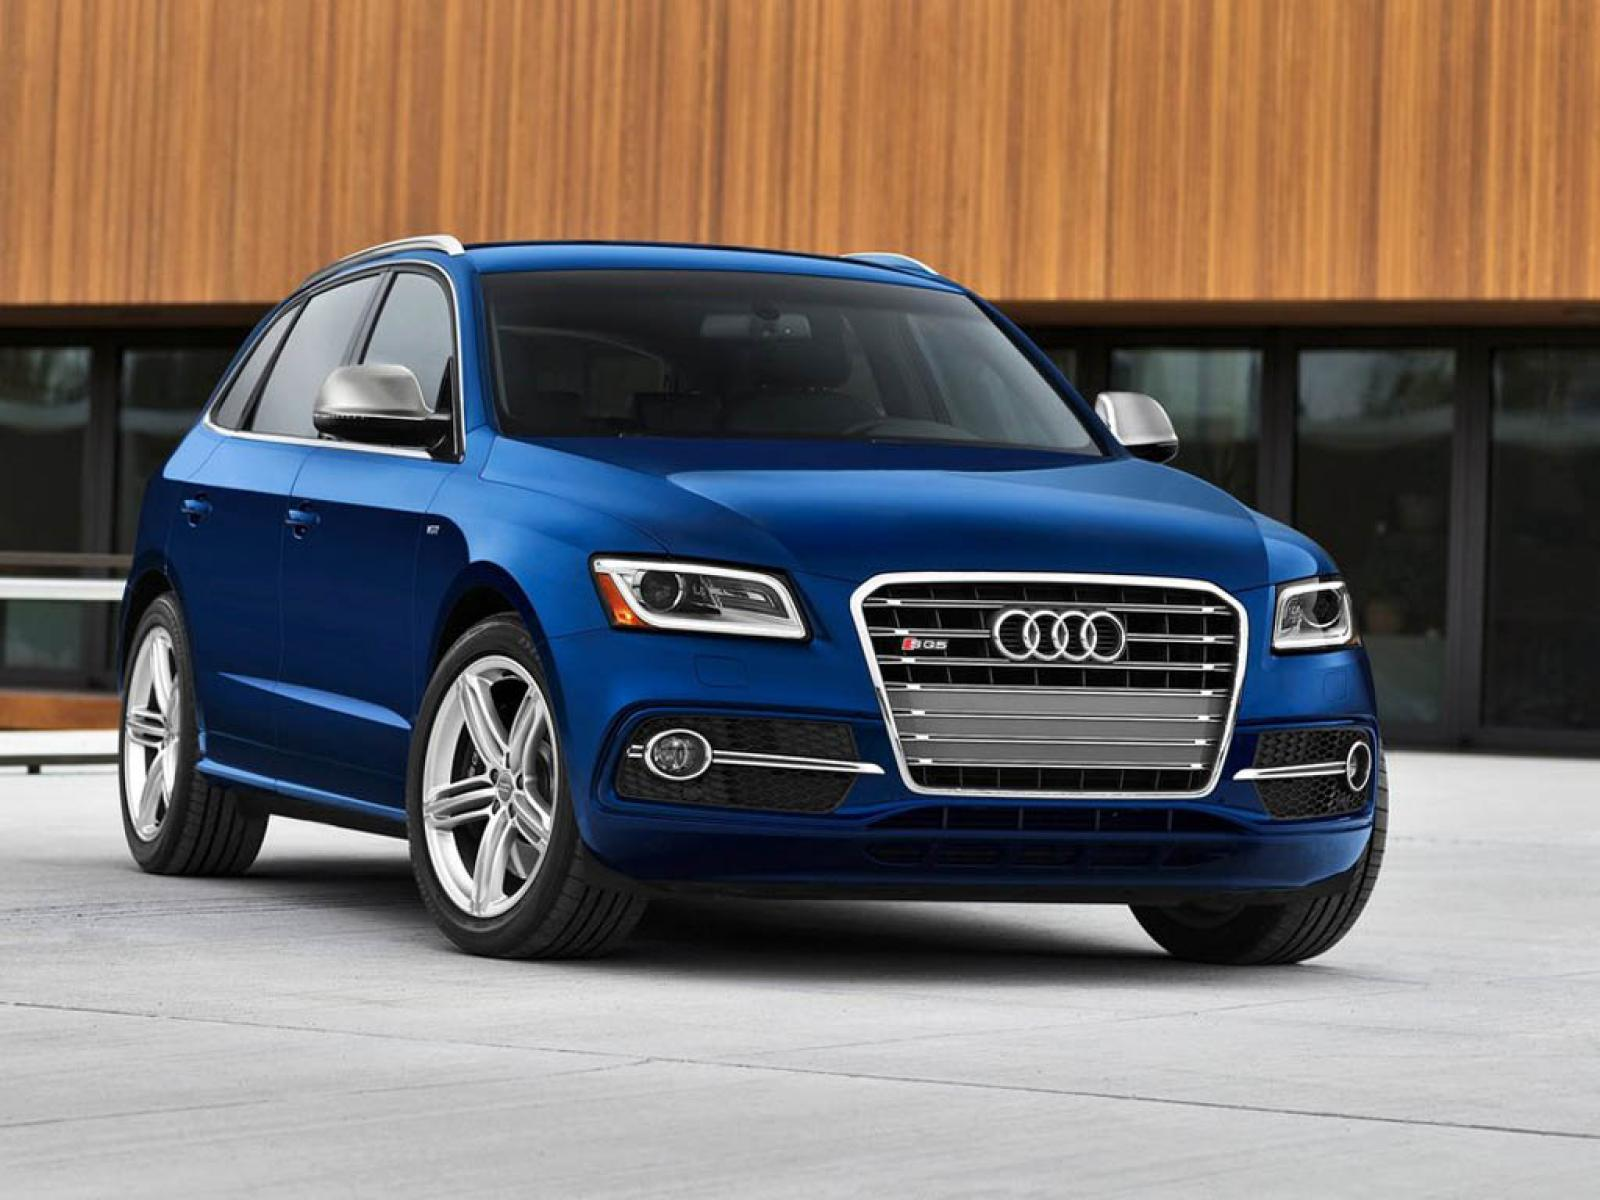 driving drive reviews test rapha with audi quattro tdi review first l created suv road